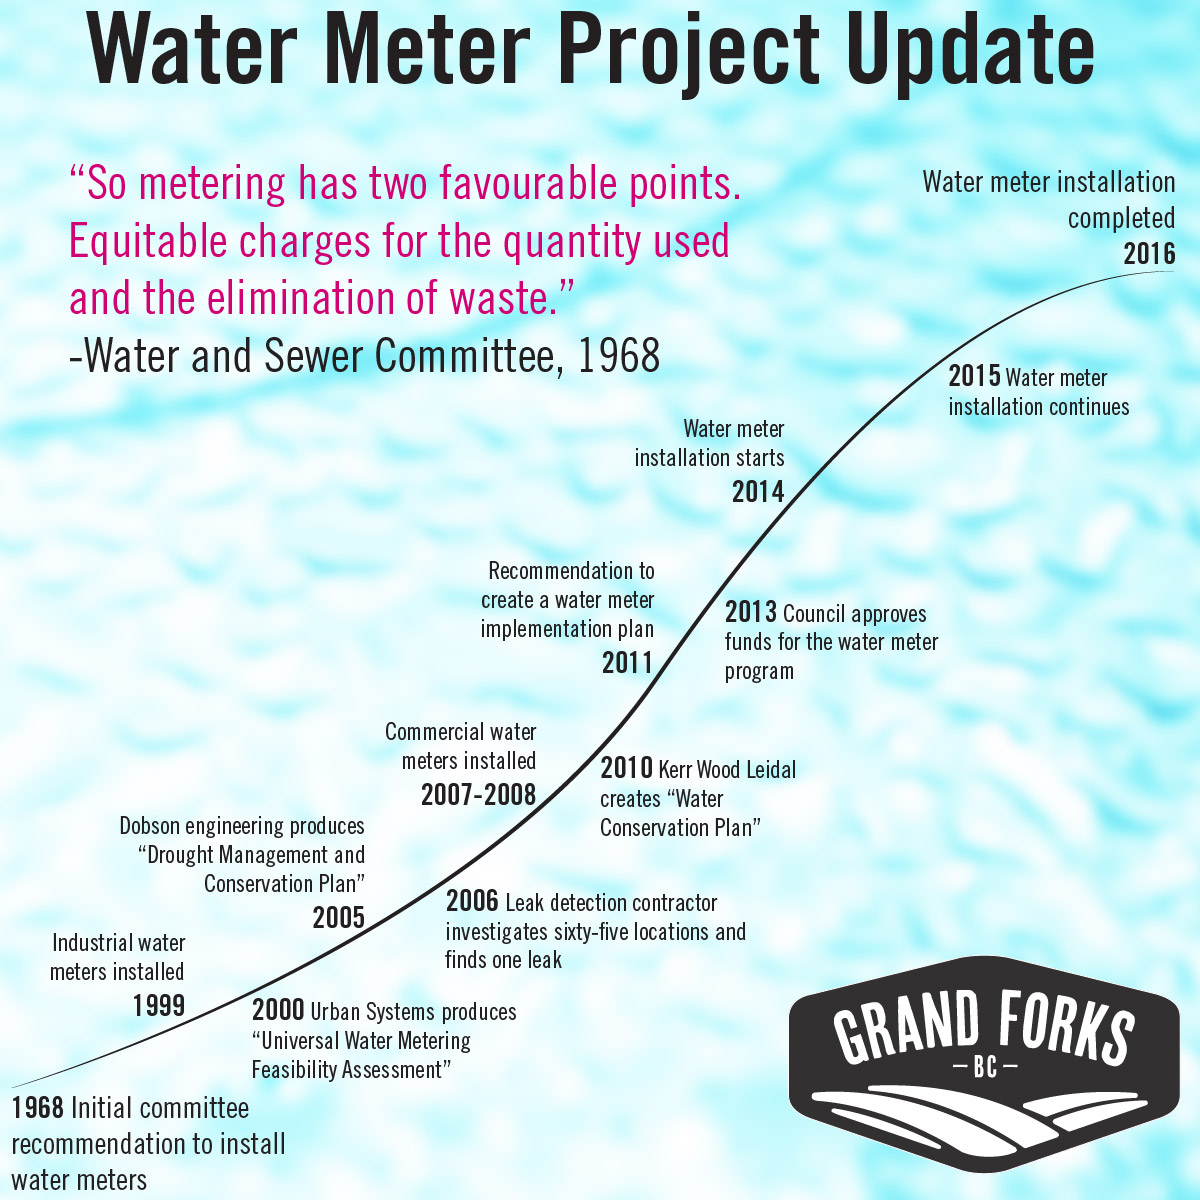 Water meter project timeline